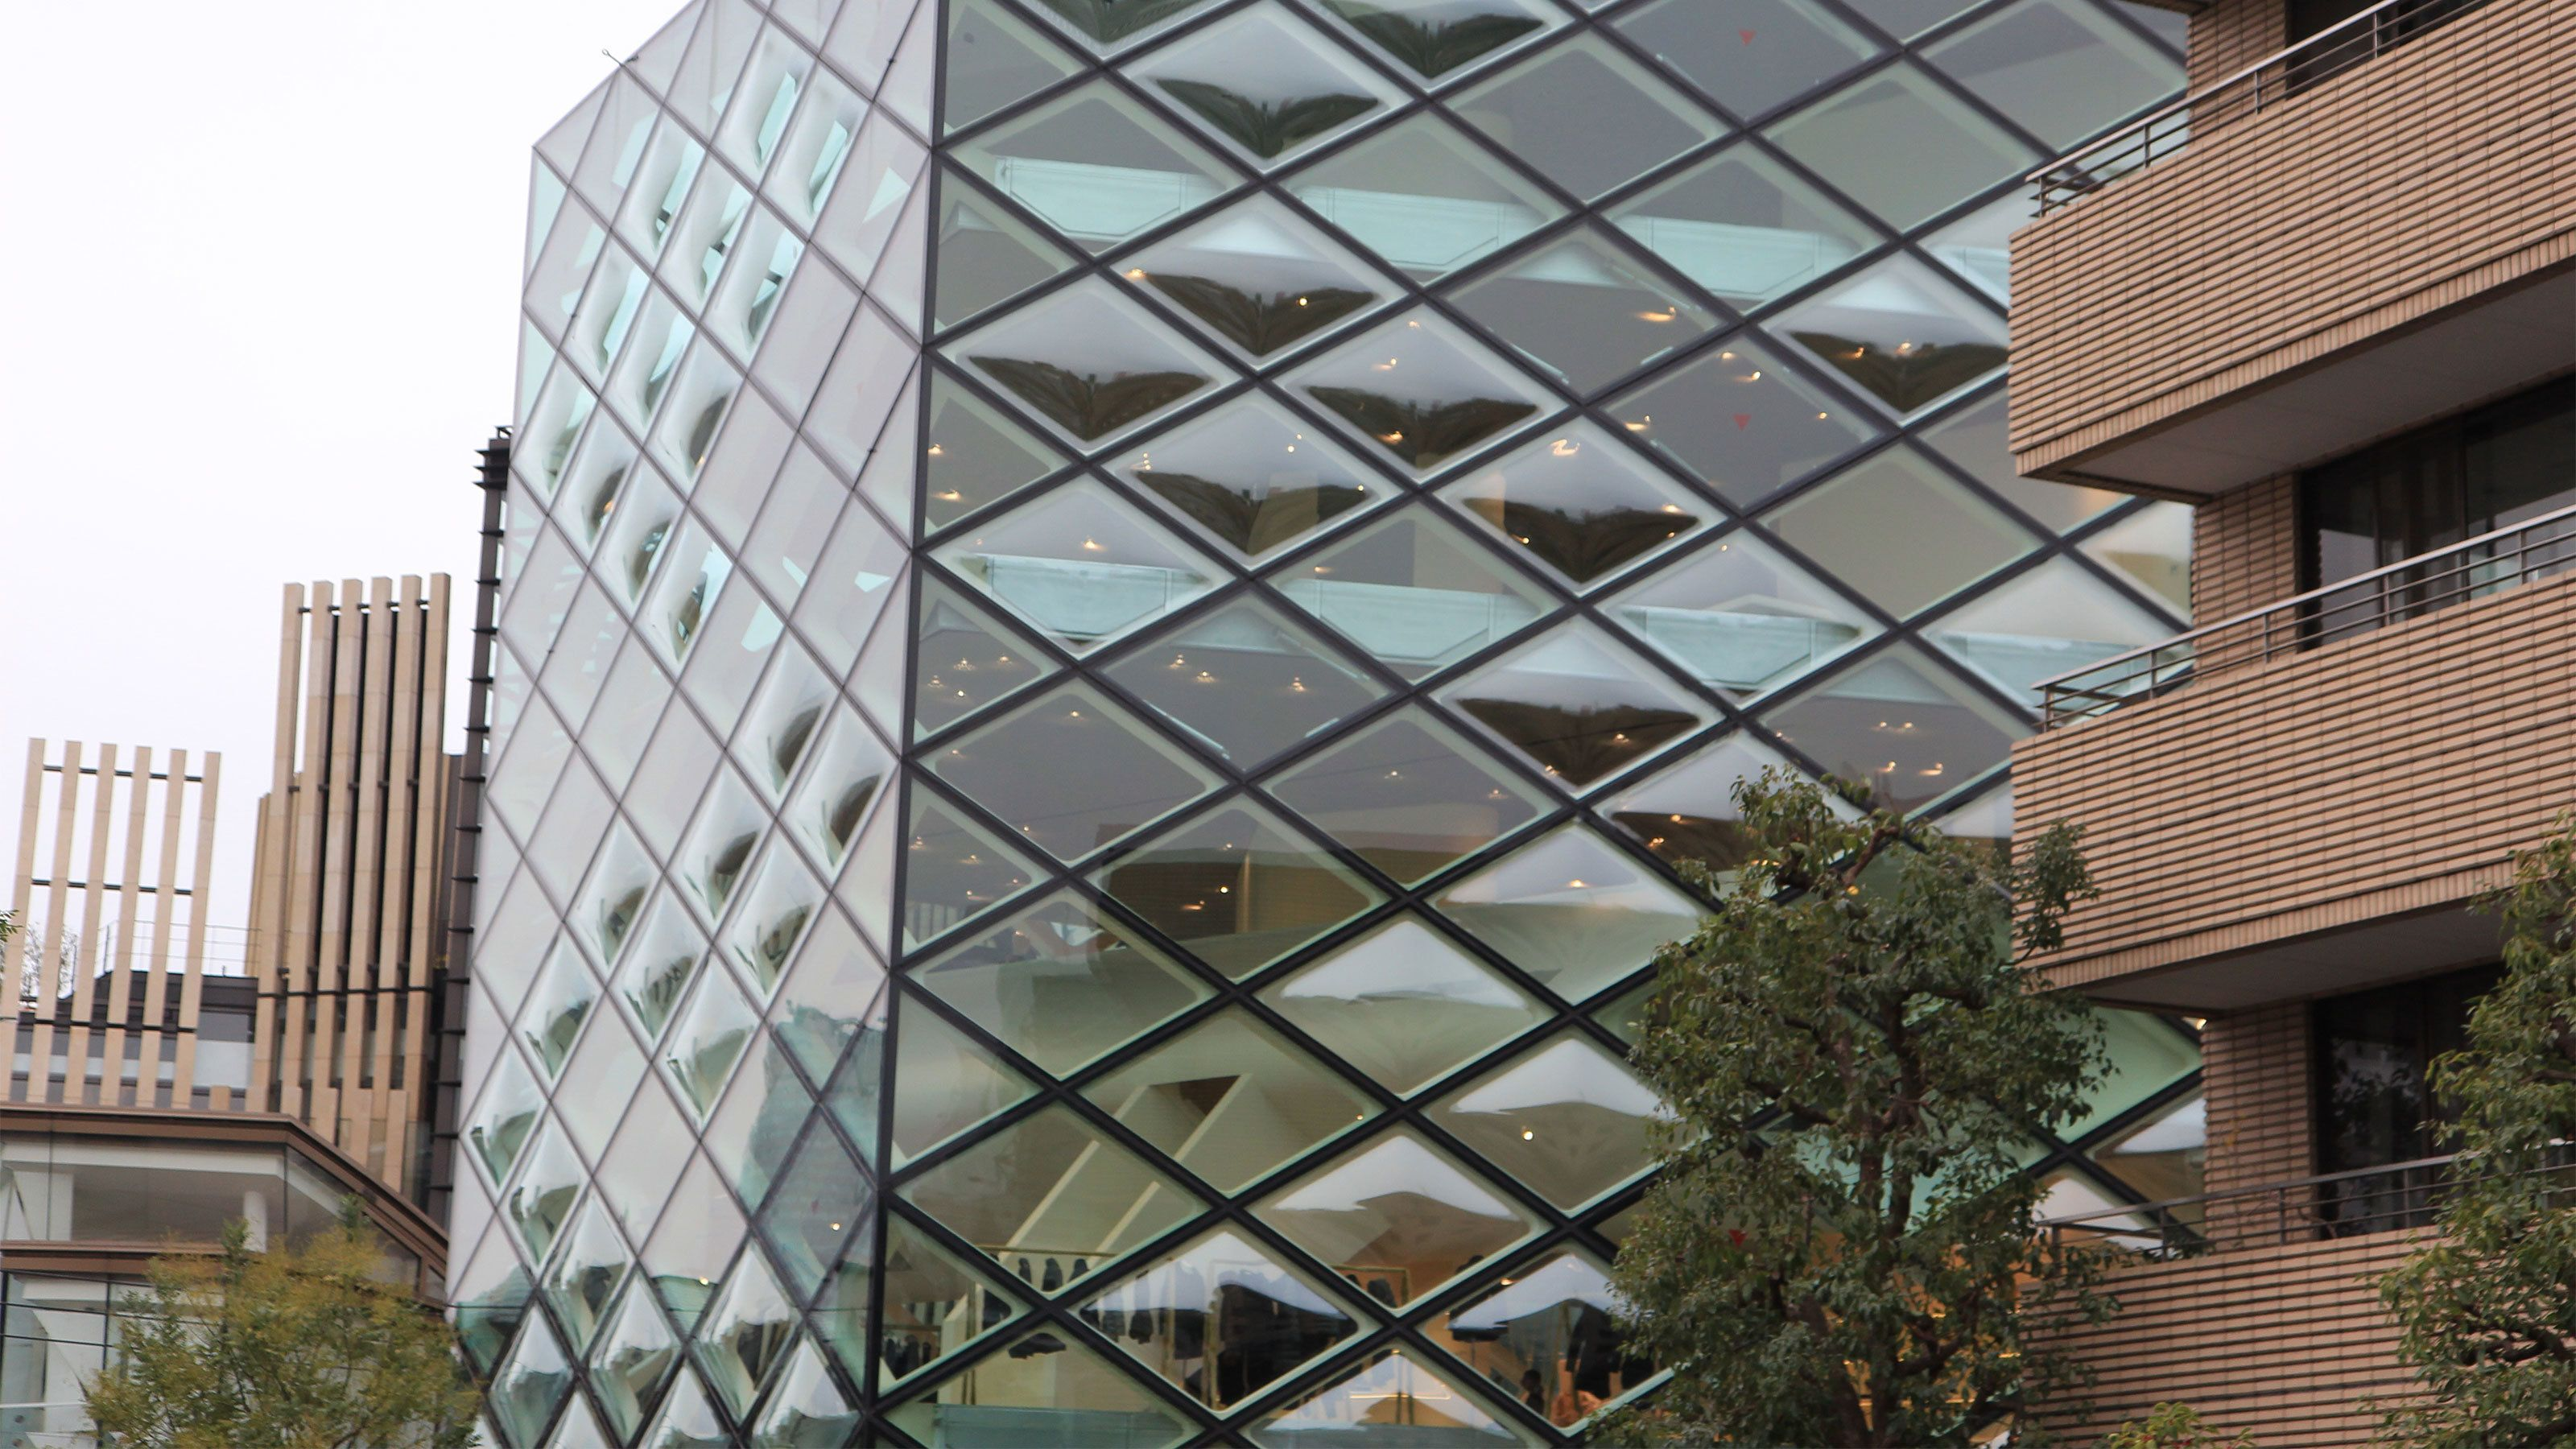 A building with diamond shaped windows in Tokyo Japan